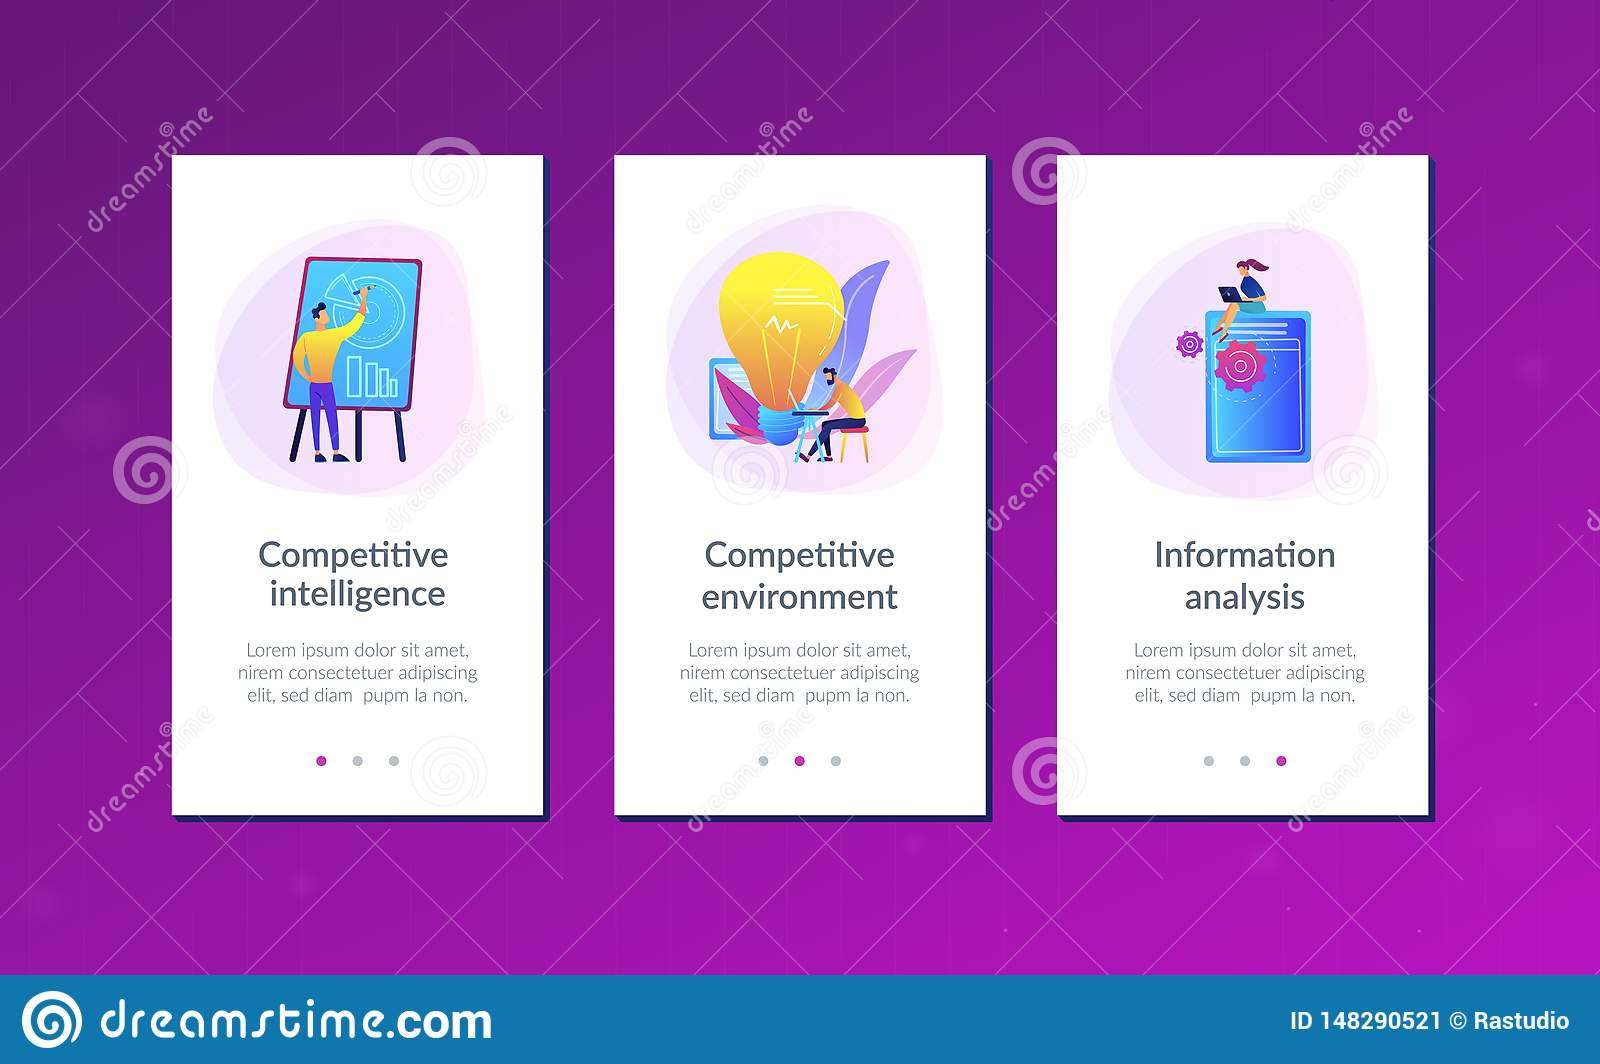 Competitive intelligence app interface template.